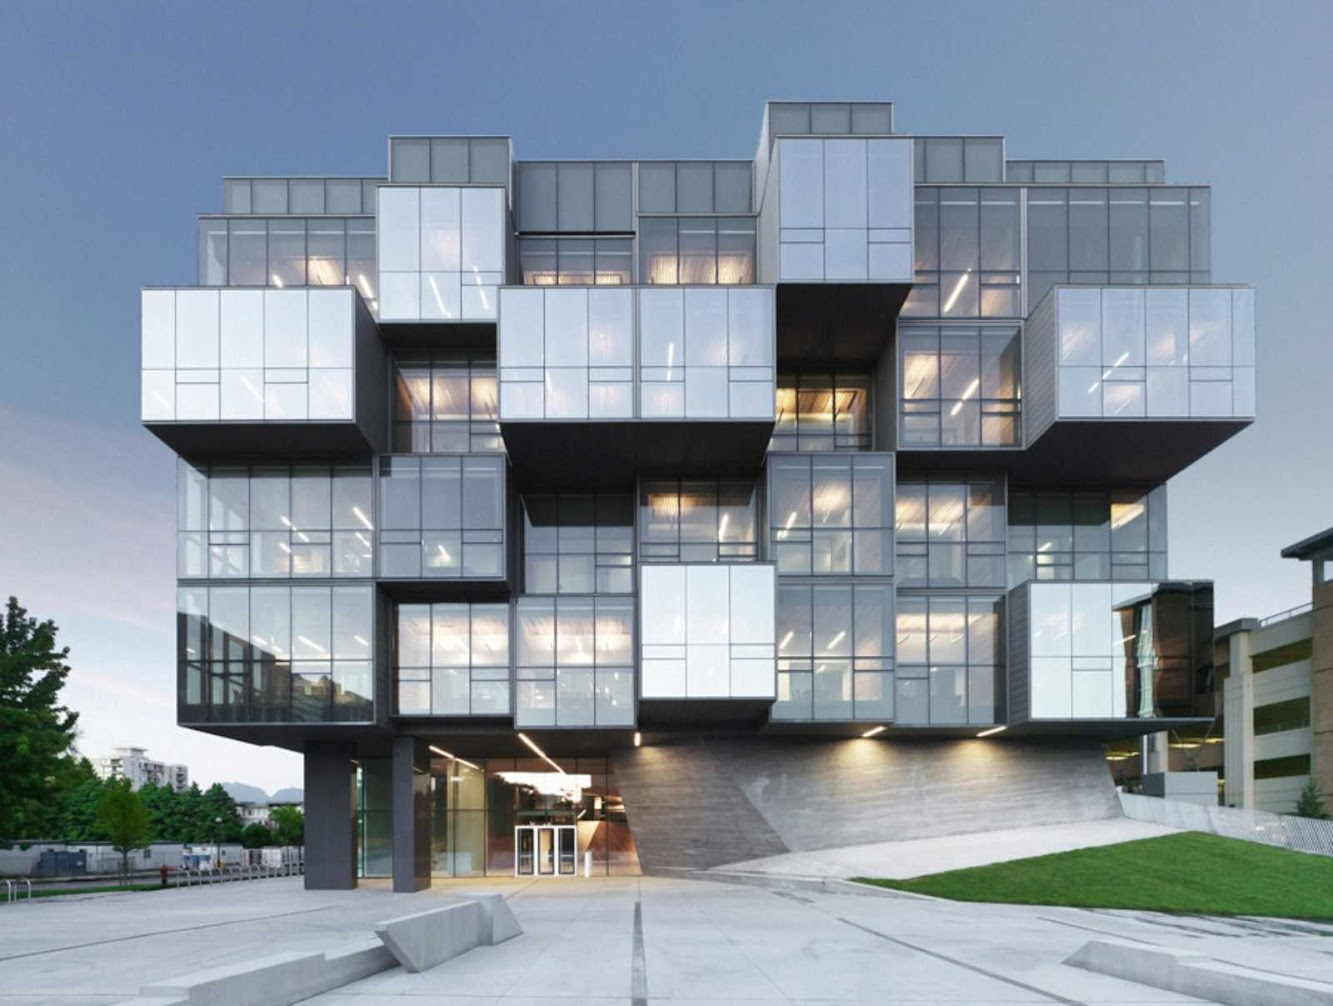 Vancouver, Columbia Britannica, Canada: Ubc Faculty of Pharmaceutical Sciences by Saucier + Perrotte Architectes & Hcma